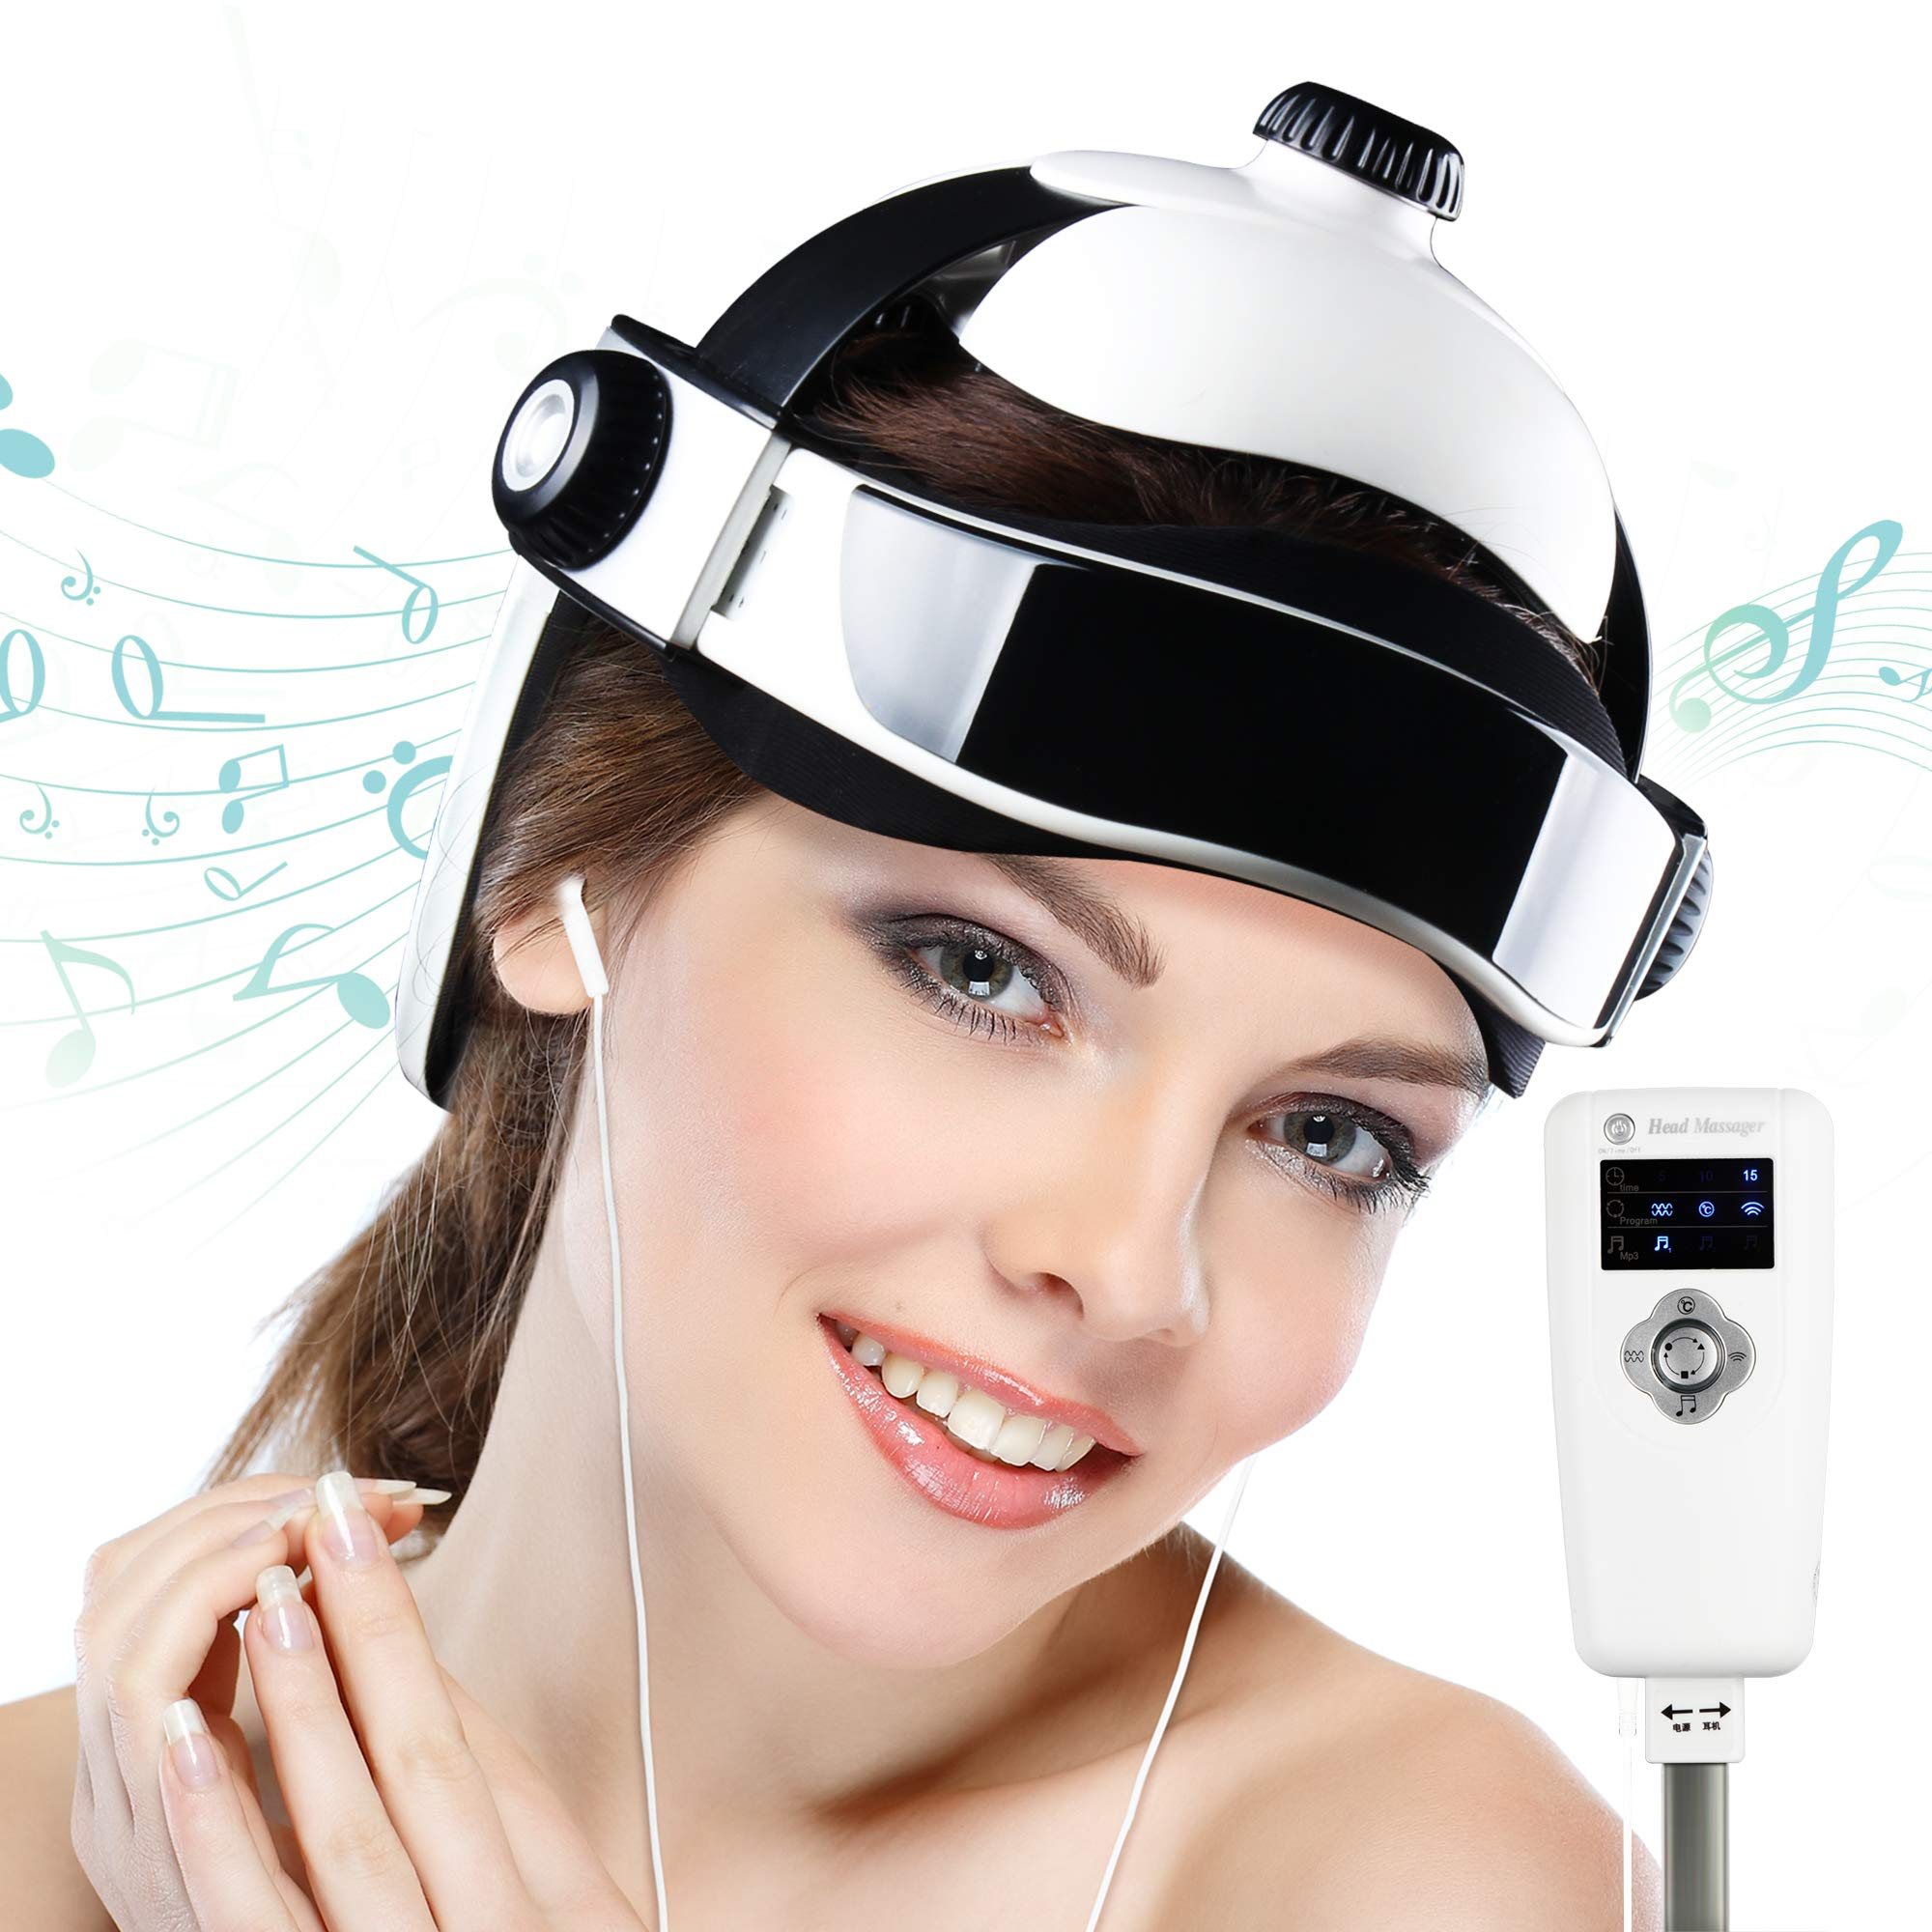 REAQER Electric Head Massager Multifunctional Massage Helmet with Soothing Music and Air Pressure to Relax and Relieve The Headache by REAQER (Image #1)